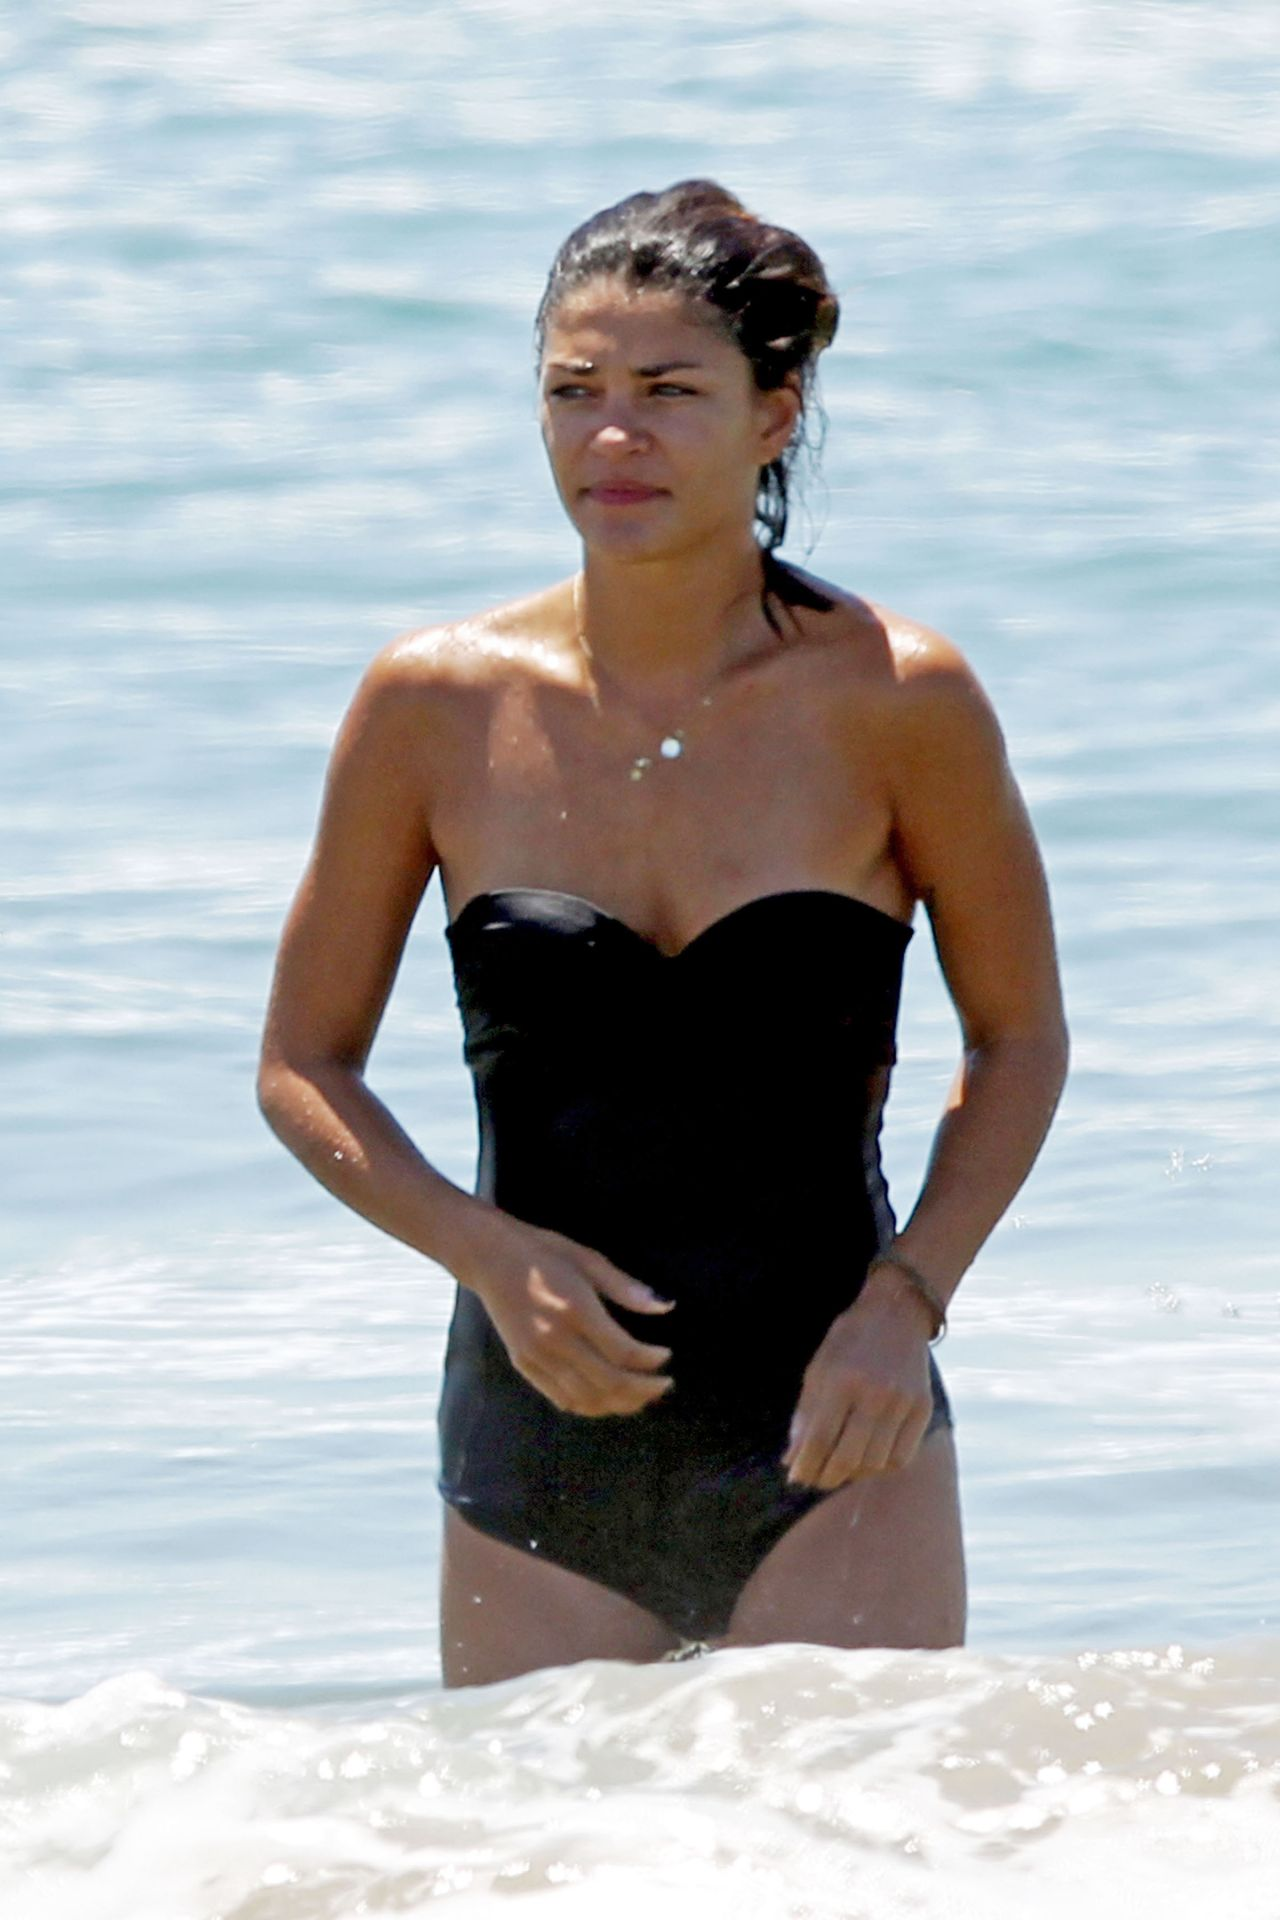 Paparazzi Jessica Szohr nude (98 foto and video), Pussy, Leaked, Instagram, in bikini 2020